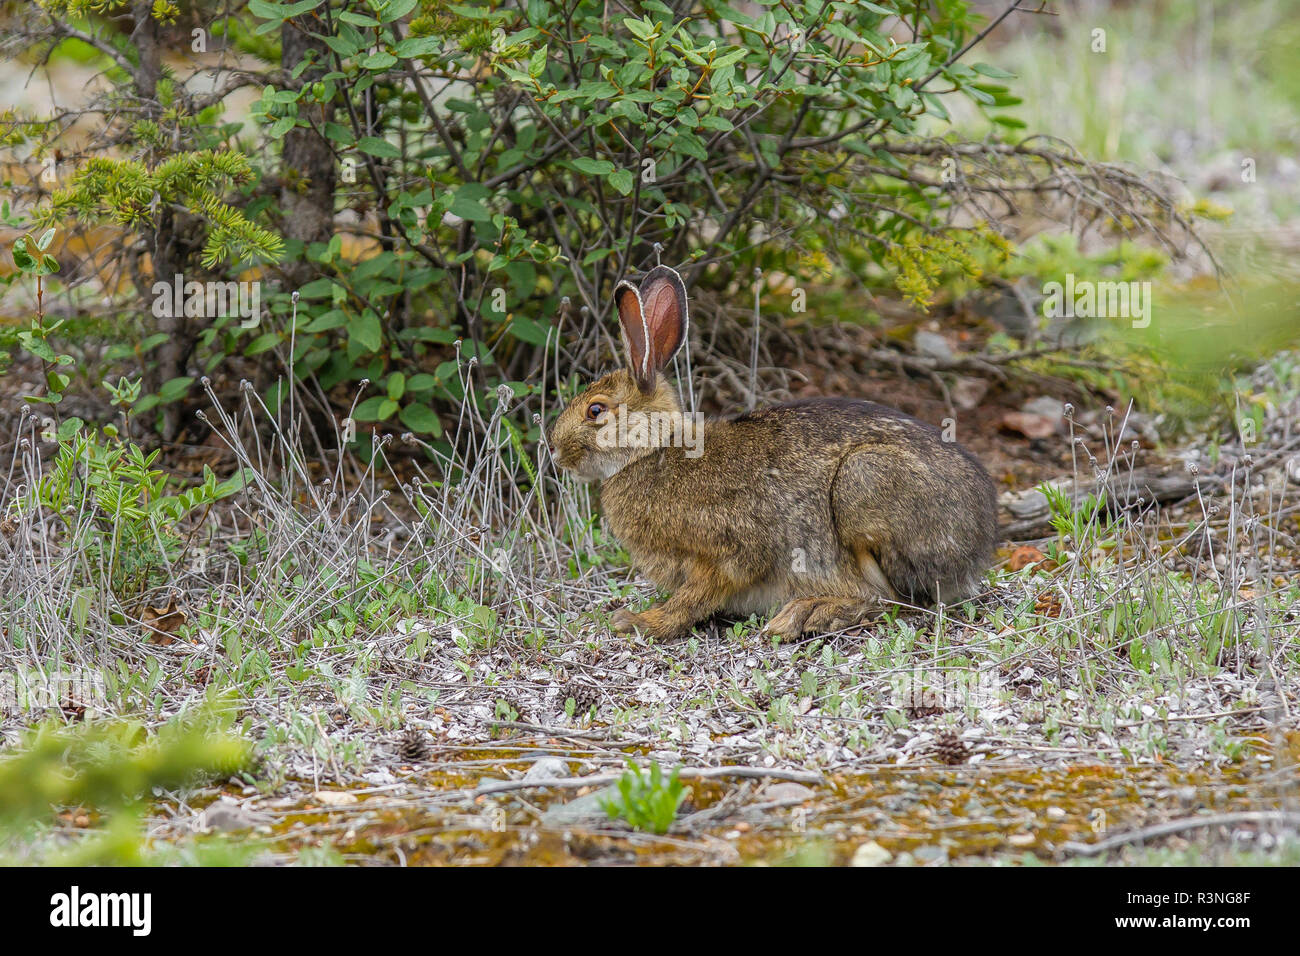 Canada, Yukon Territory, Destruction Bay. Arctic Hare (Lepus arcticus) browsing at Congdon Creek. - Stock Image